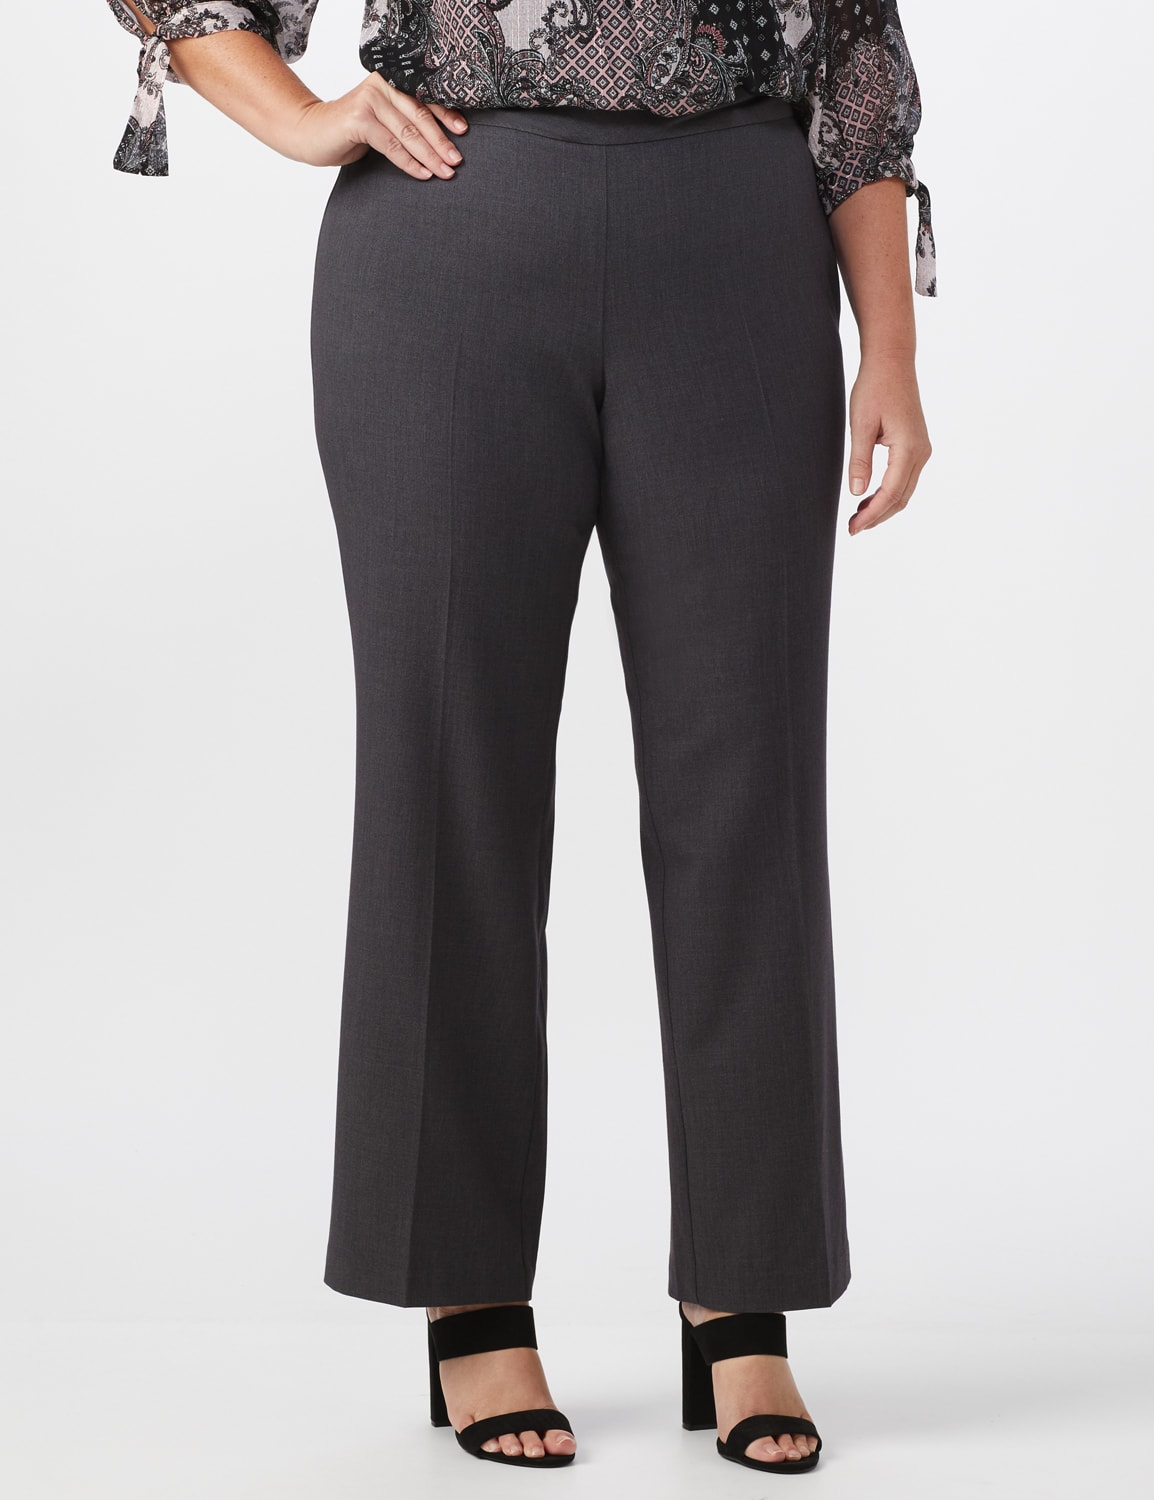 Roz & Ali Plus Secret Agent Tummy Control Pull On Pants - Average Length-Plus - grey - Front